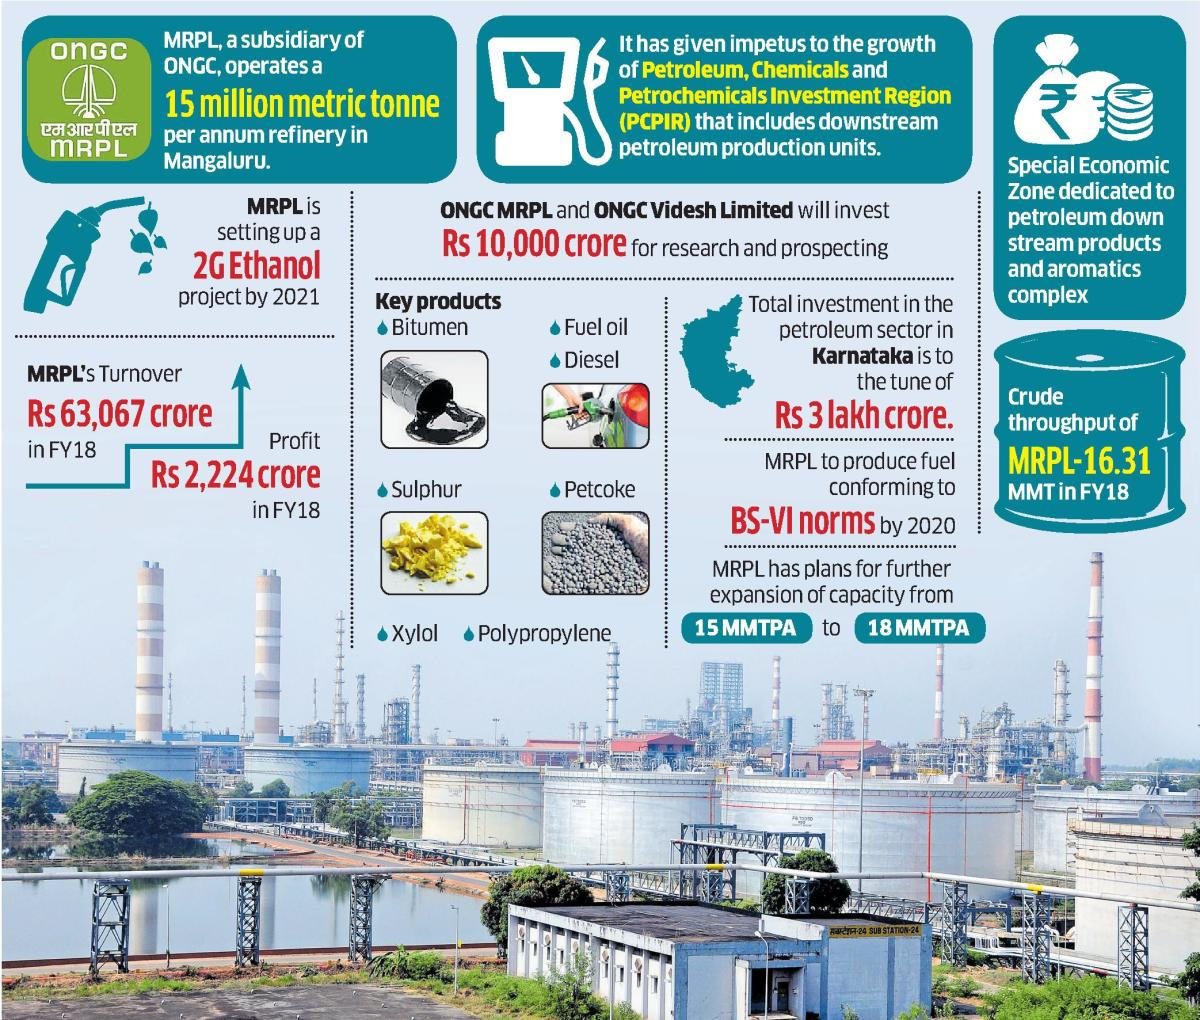 This grassroot refinery has a capacity to process 15 million metric tonnes per annum crude, and is the only refinery in India to have two hydrocrackers producing premium diesel. It also has a Polypropylene unit with a capacity of 4,40,000 MT per annum. Th